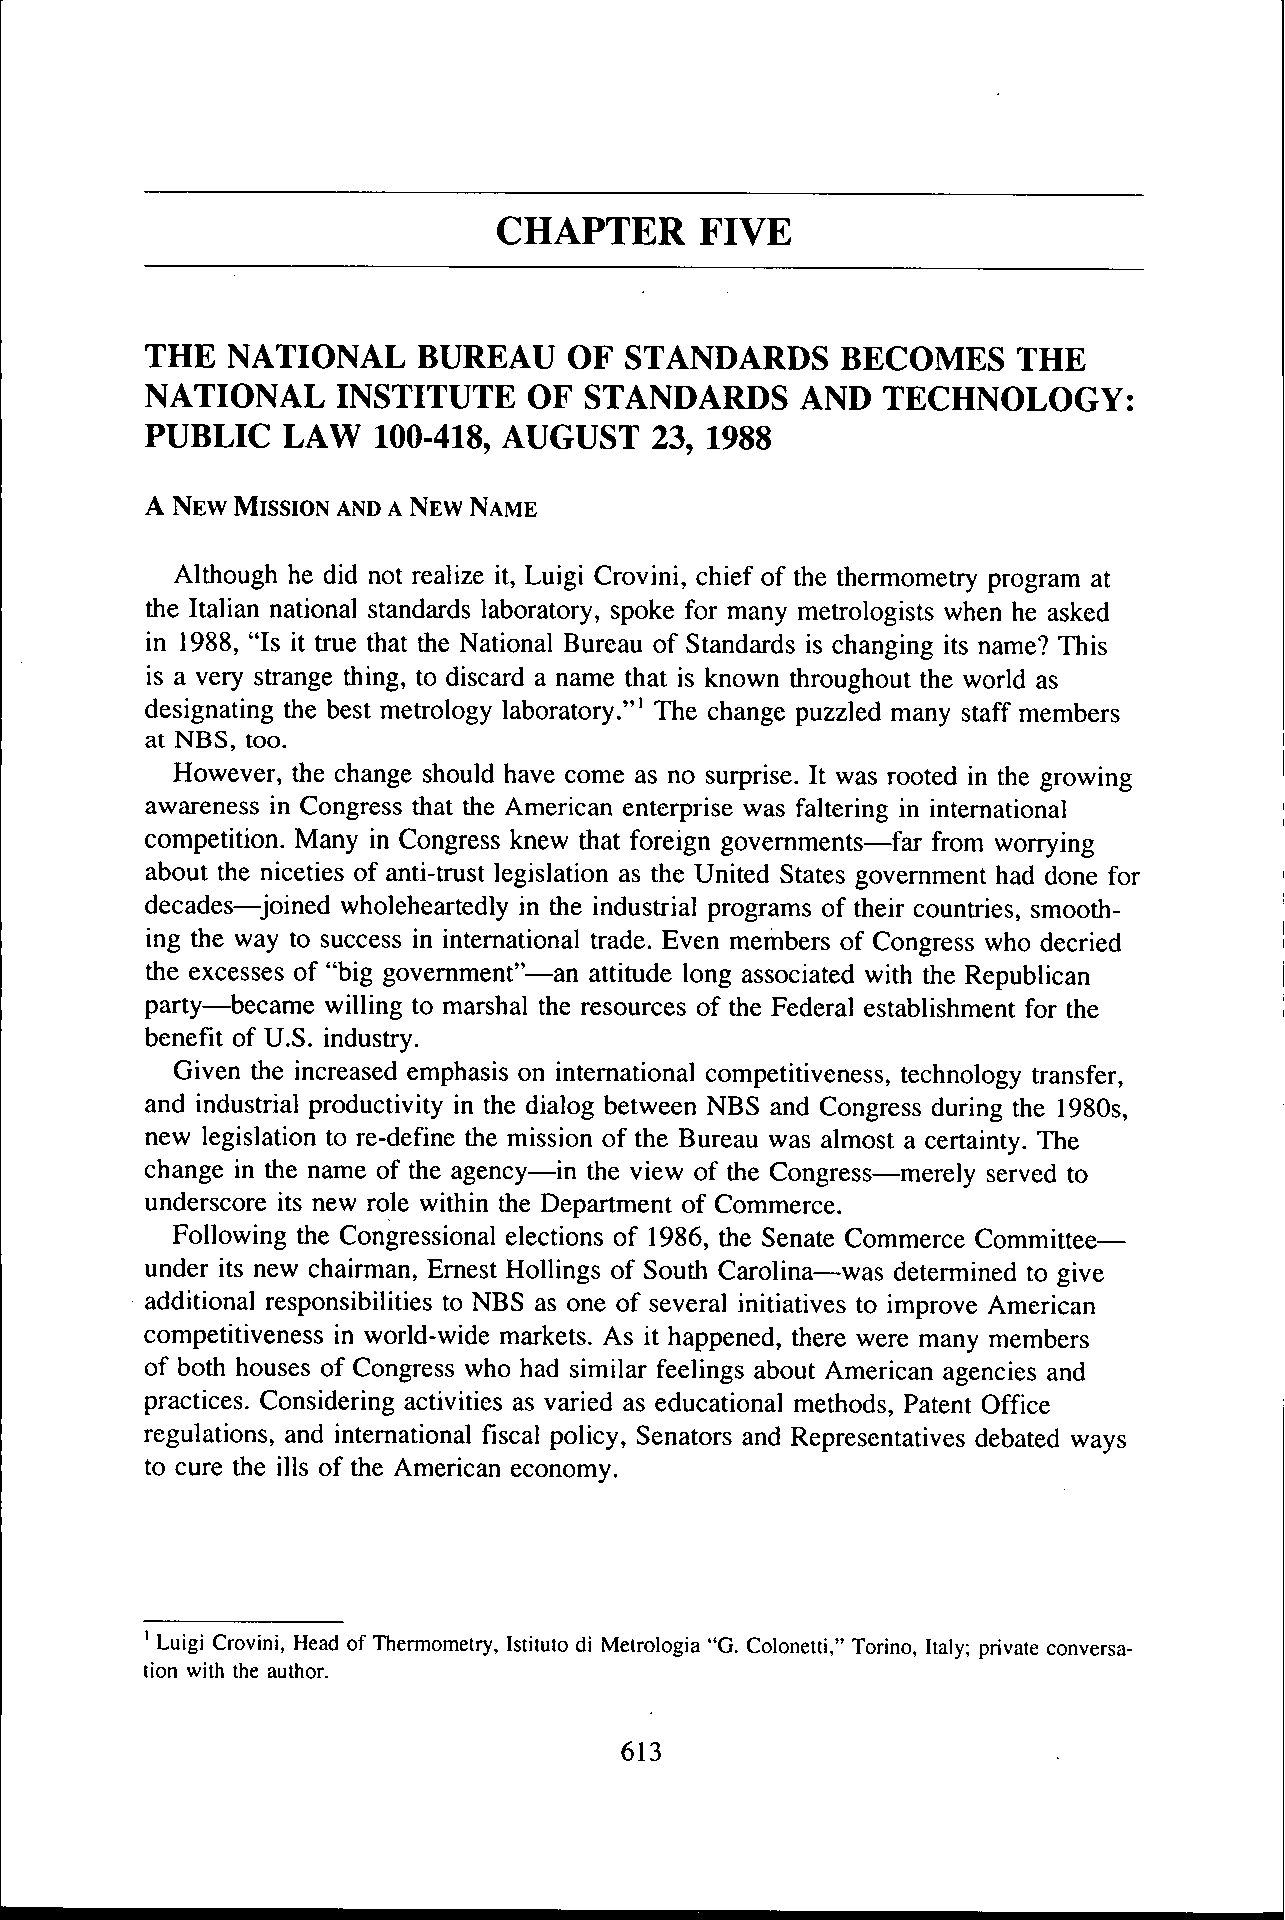 Page 1 - NBS-NIST History Volumes - NIST Digital Archives